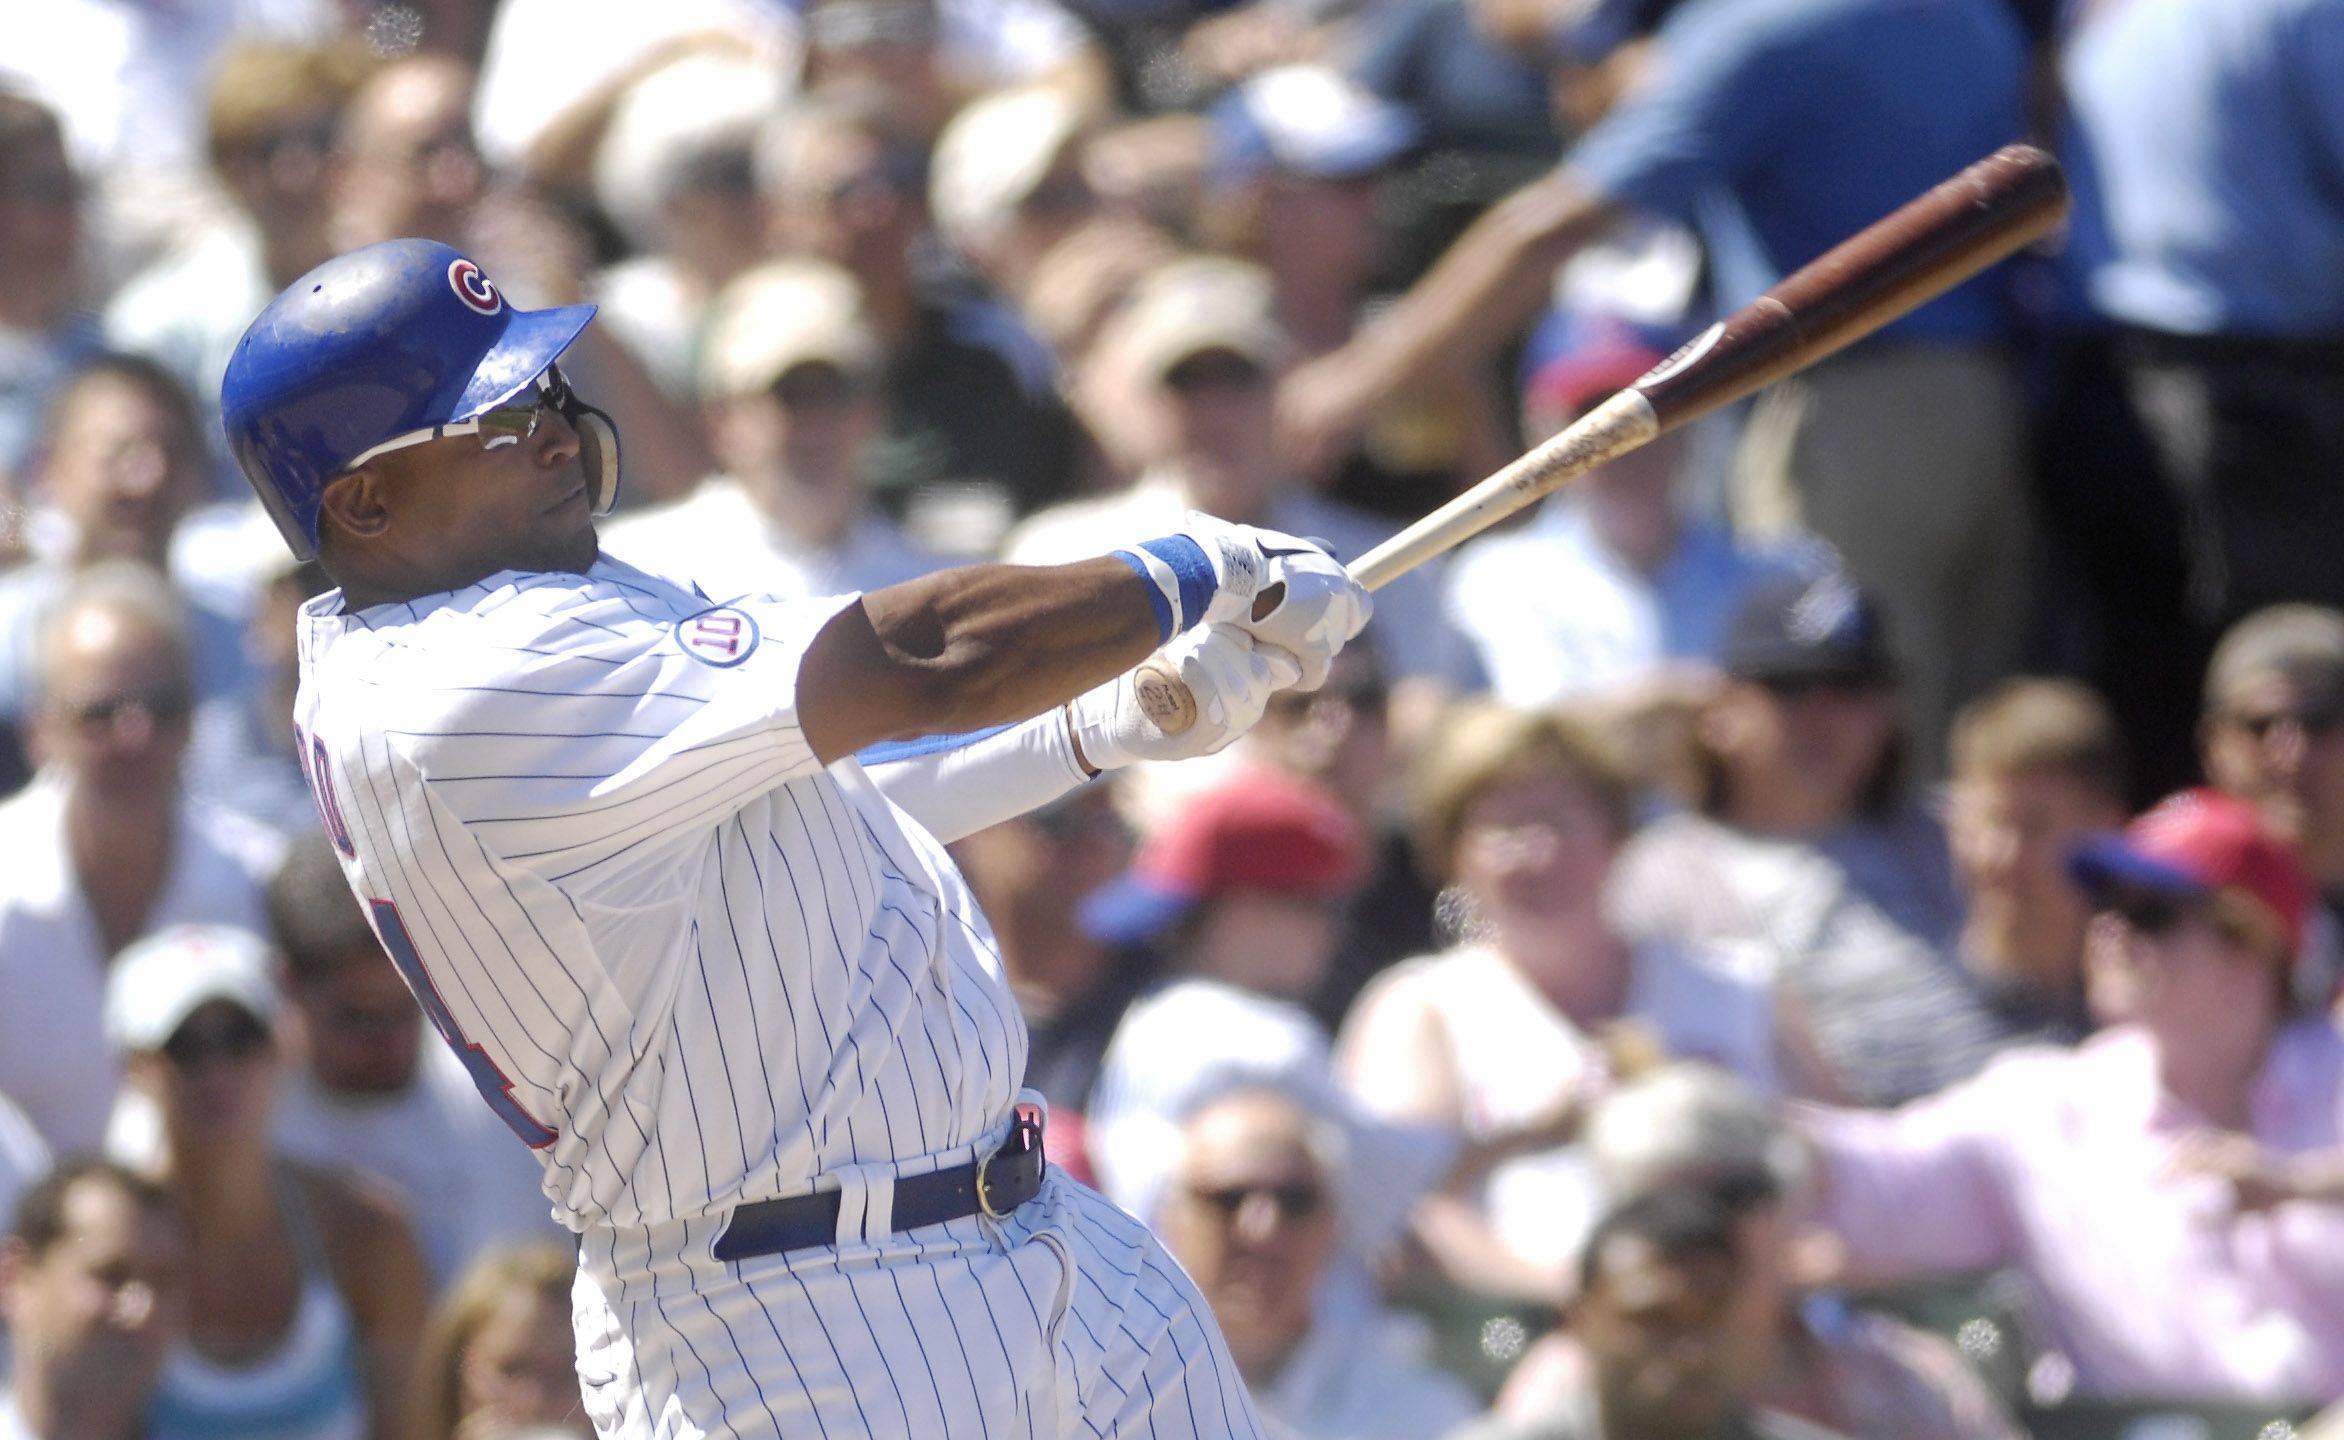 Chicago Cubs center fielder Marlon Byrd homers in the second inning.